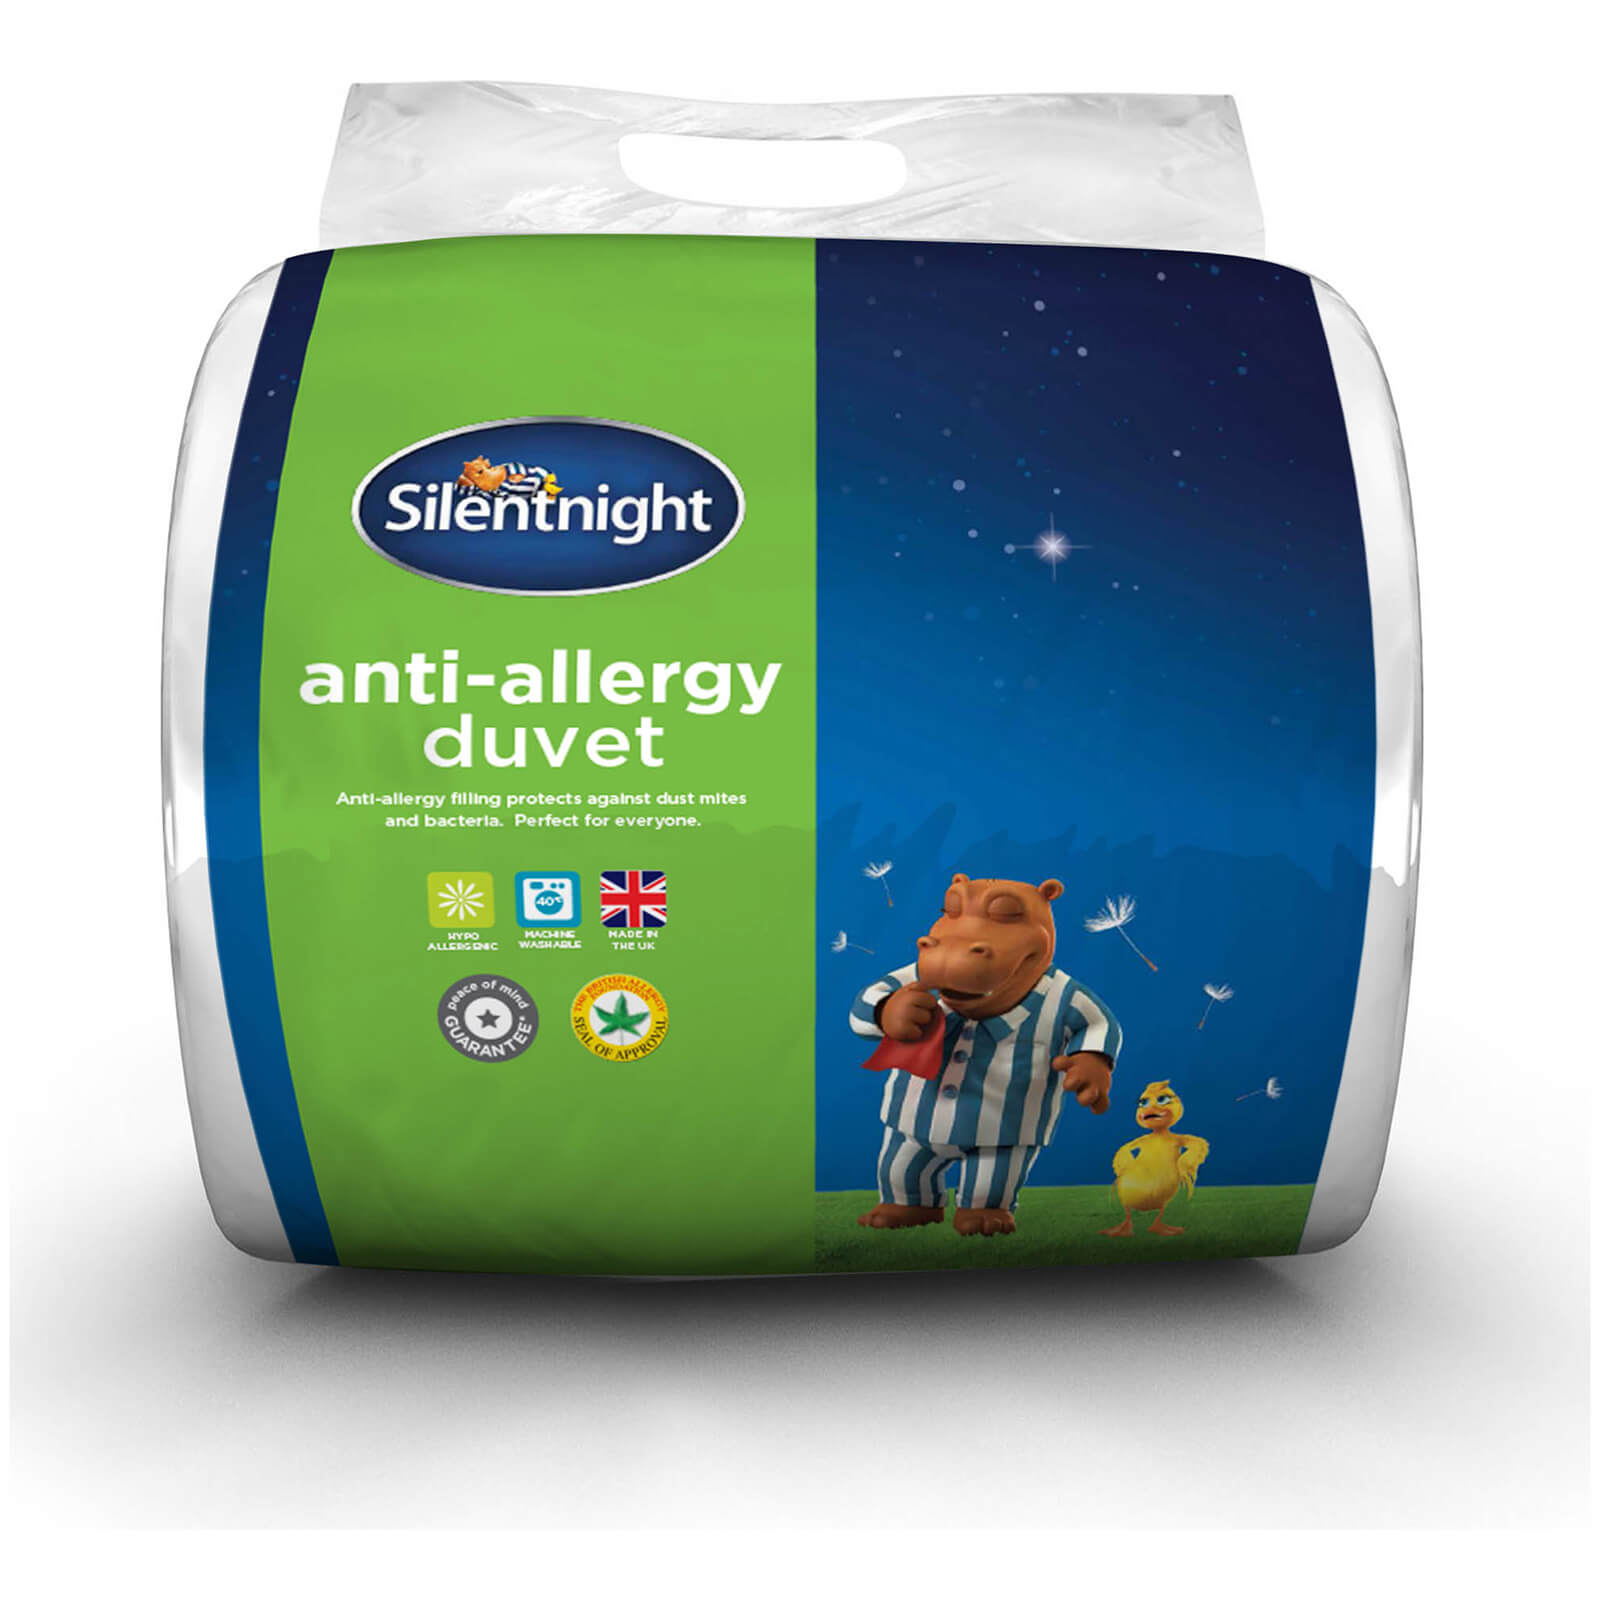 Silentnight Anti Allergy Duvet - 10.5 Tog